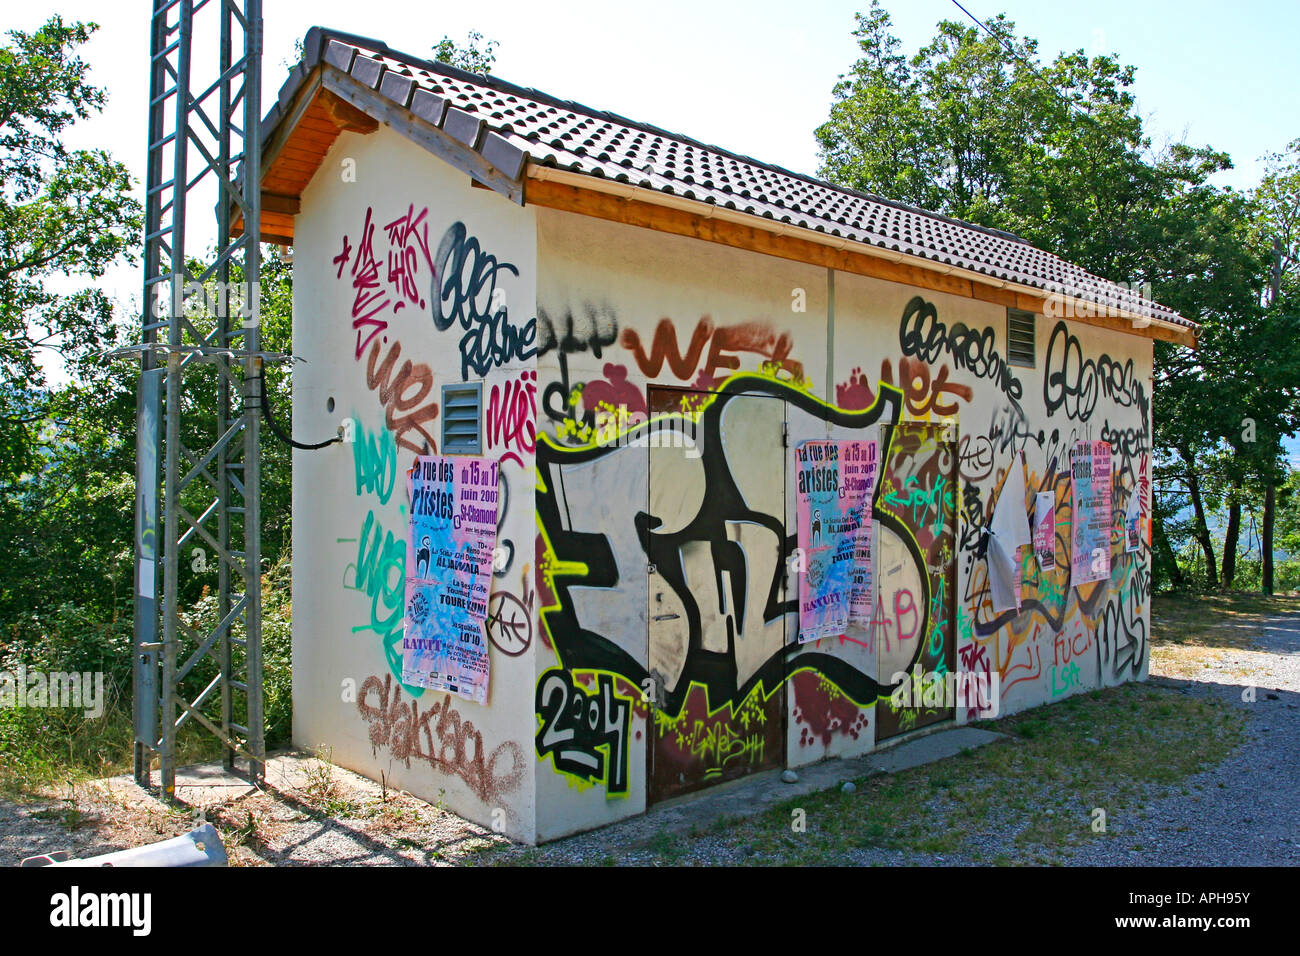 Graffiti and fly posters on a French electrical sub station - Stock Image